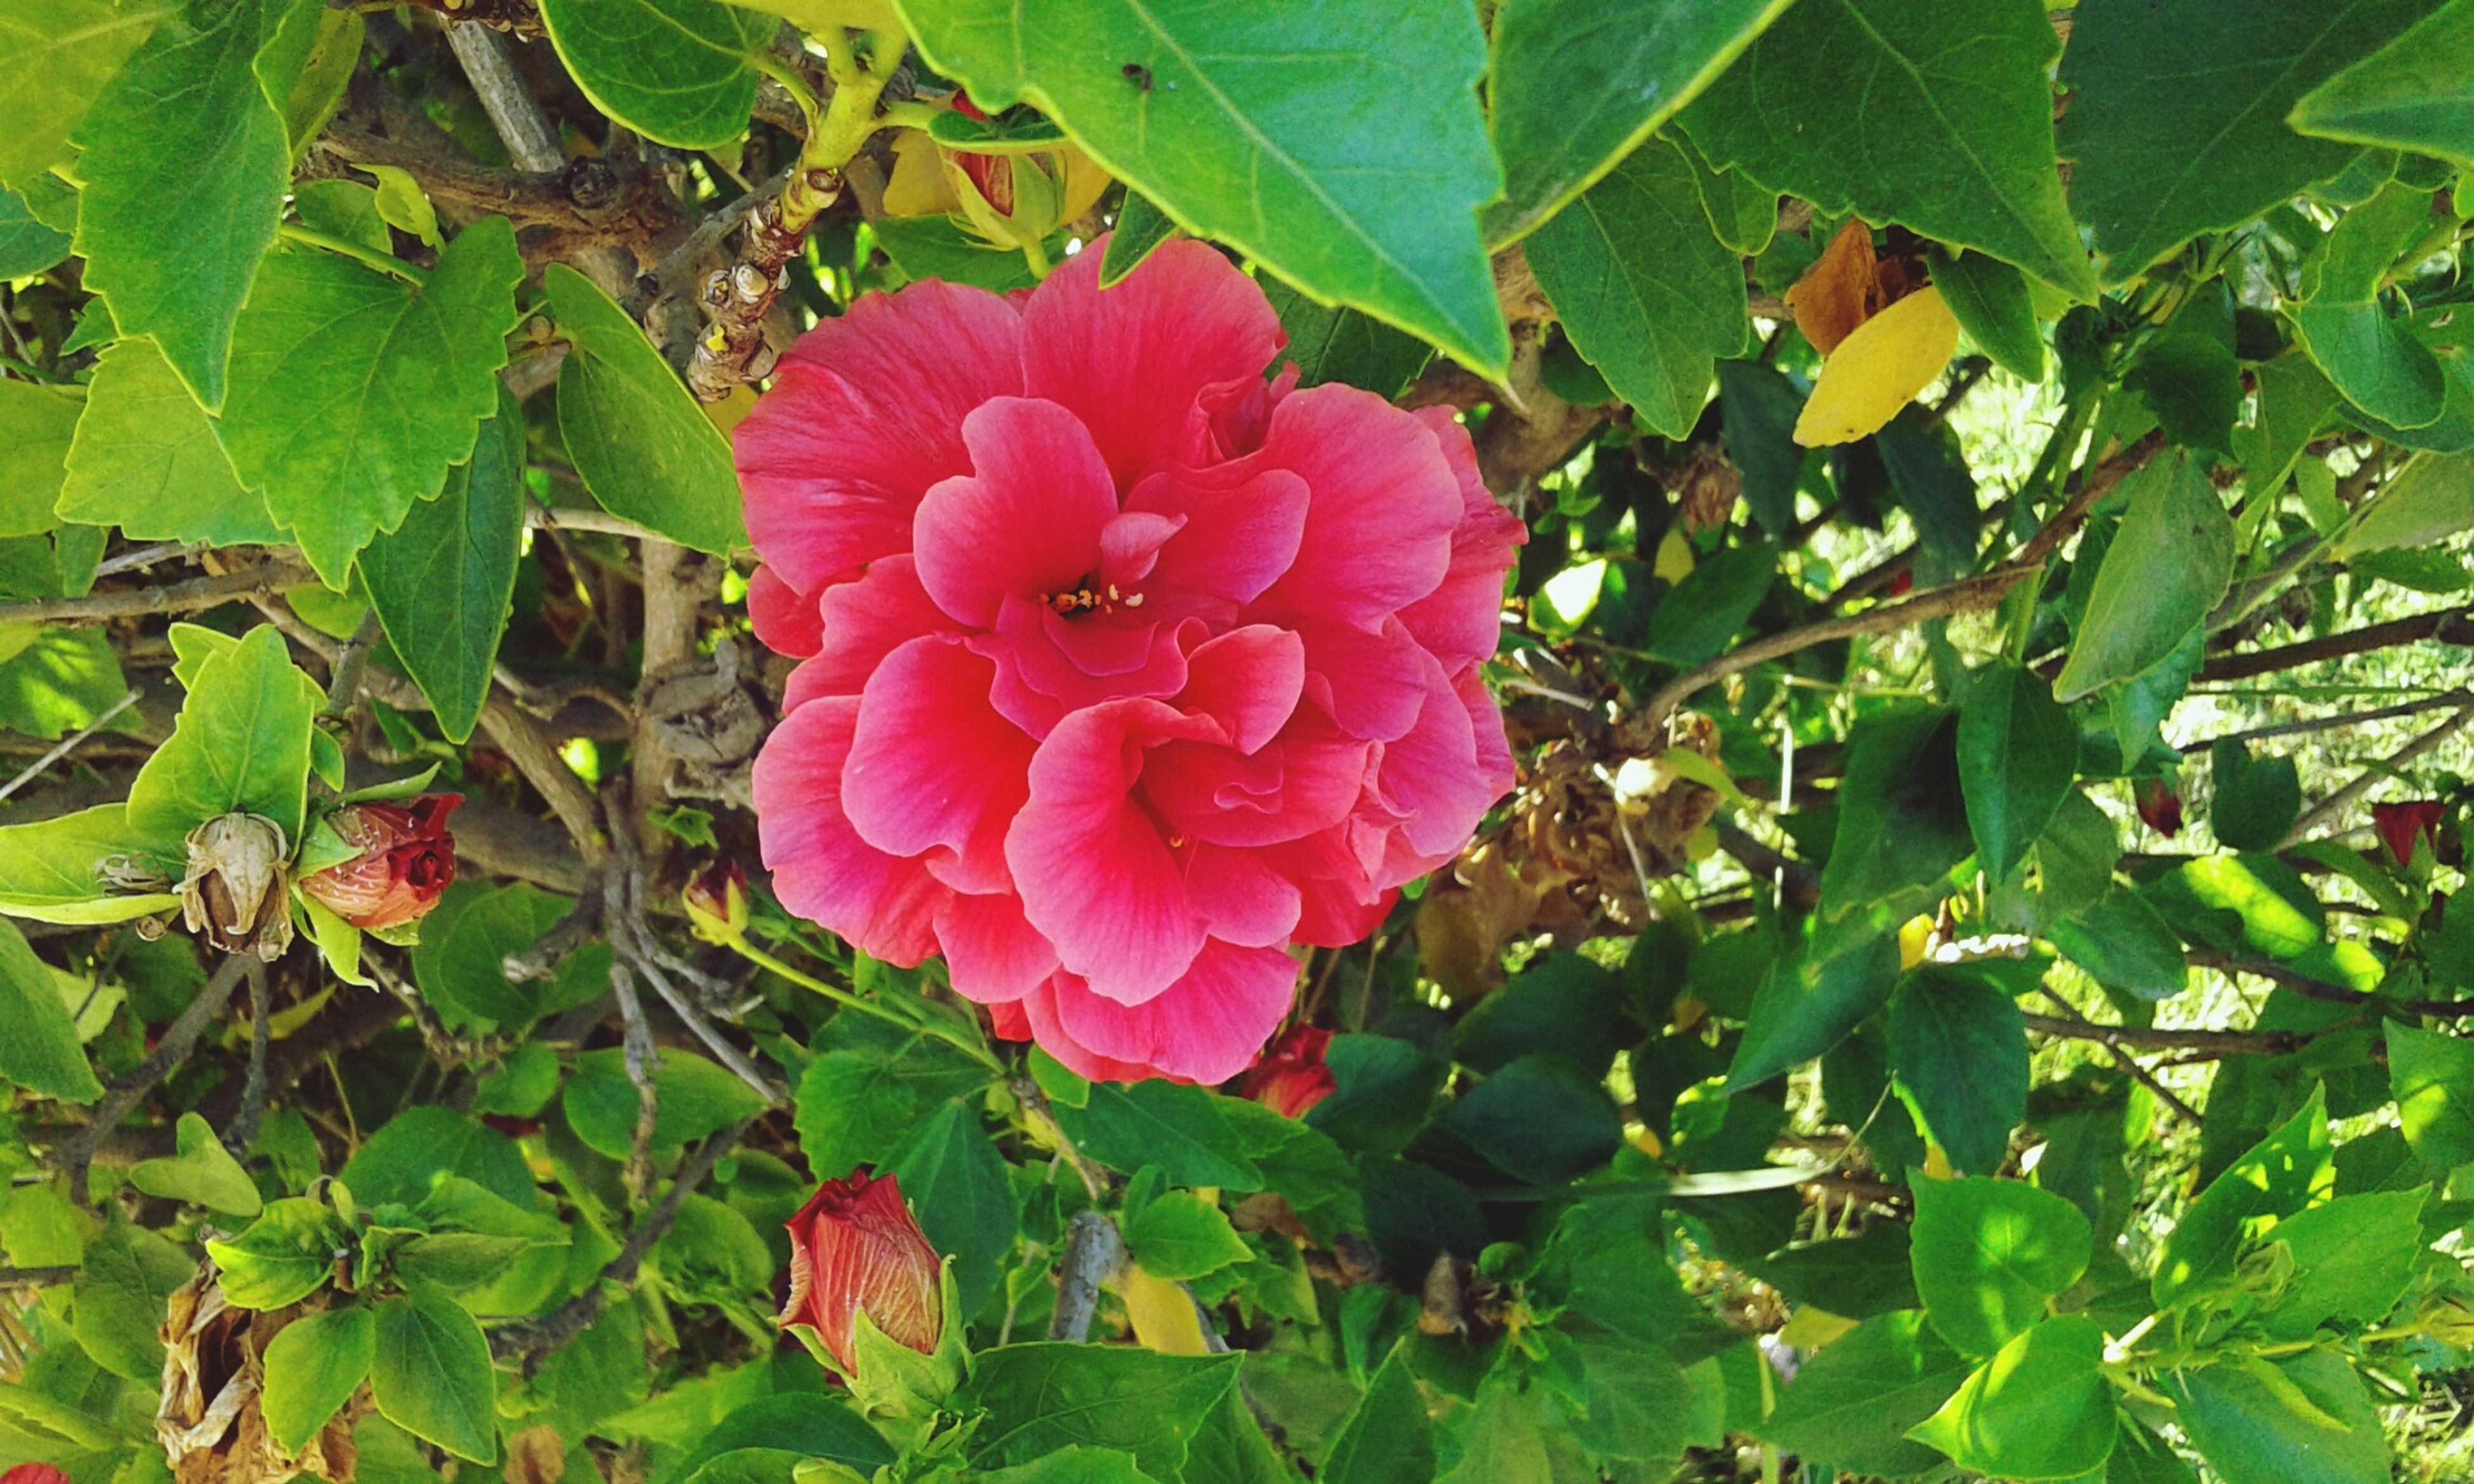 flower, growth, freshness, leaf, beauty in nature, fragility, plant, green color, petal, nature, pink color, flower head, close-up, blooming, outdoors, focus on foreground, botany, day, in bloom, no people, blossom, green, growing, tranquility, natural pattern, lush foliage, selective focus